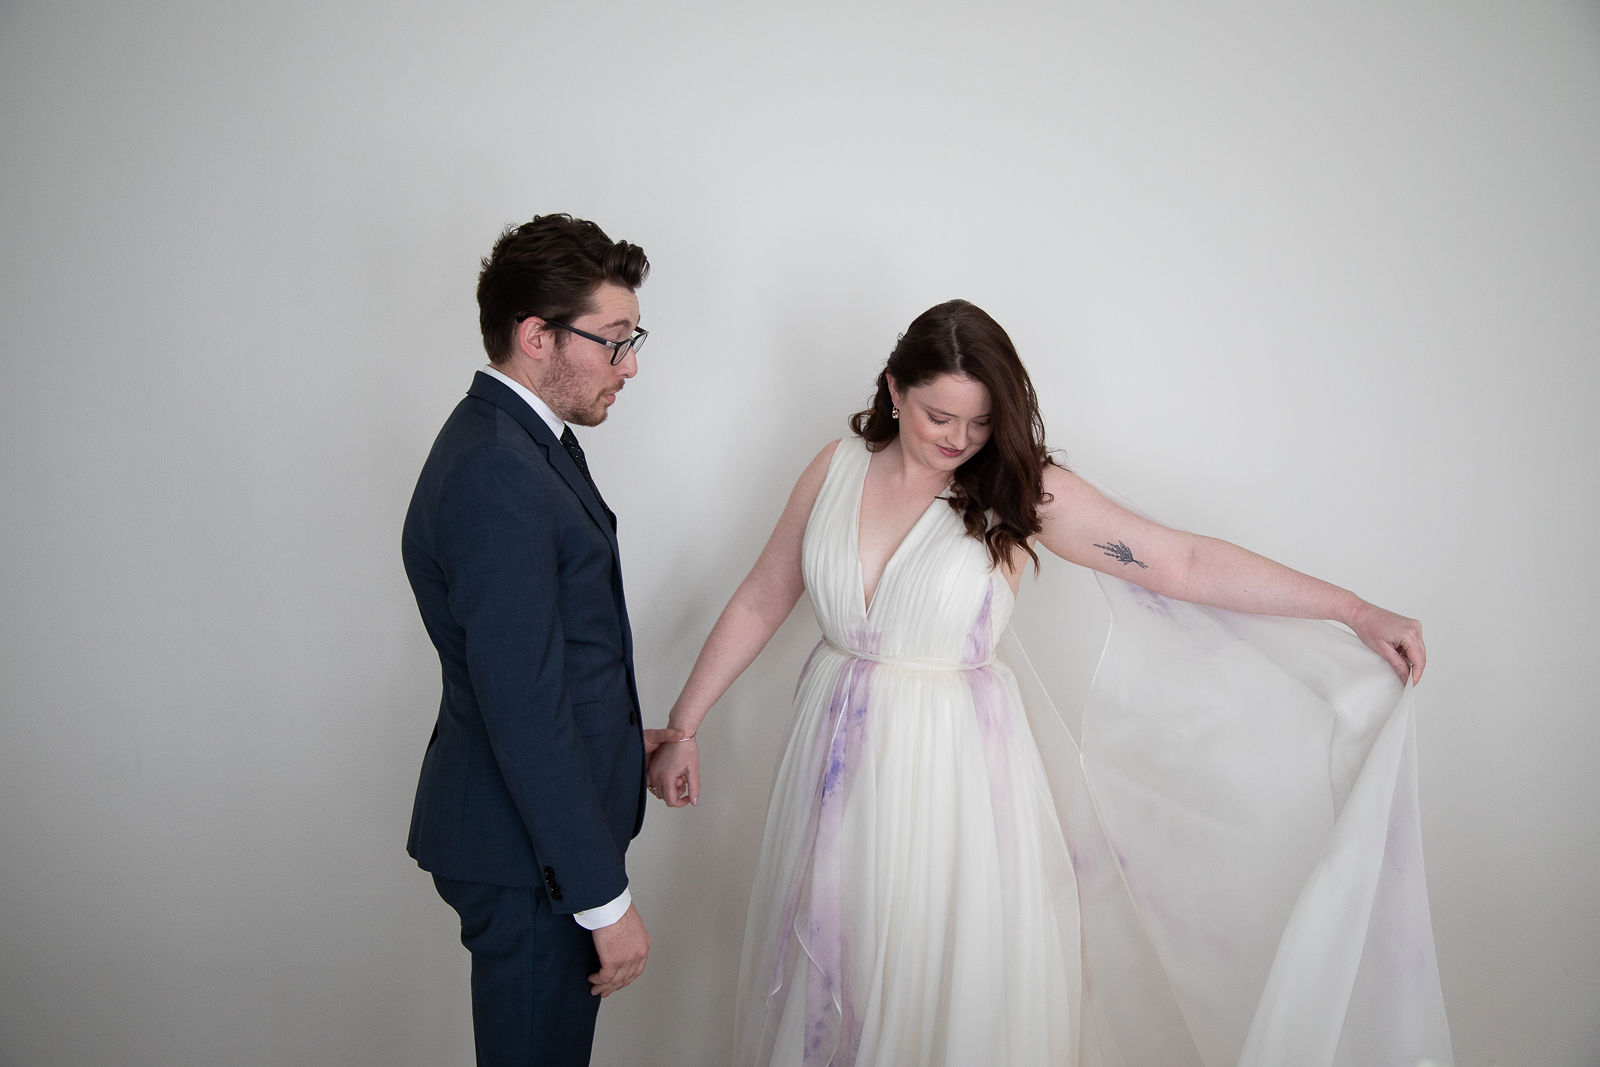 intimate wedding first look